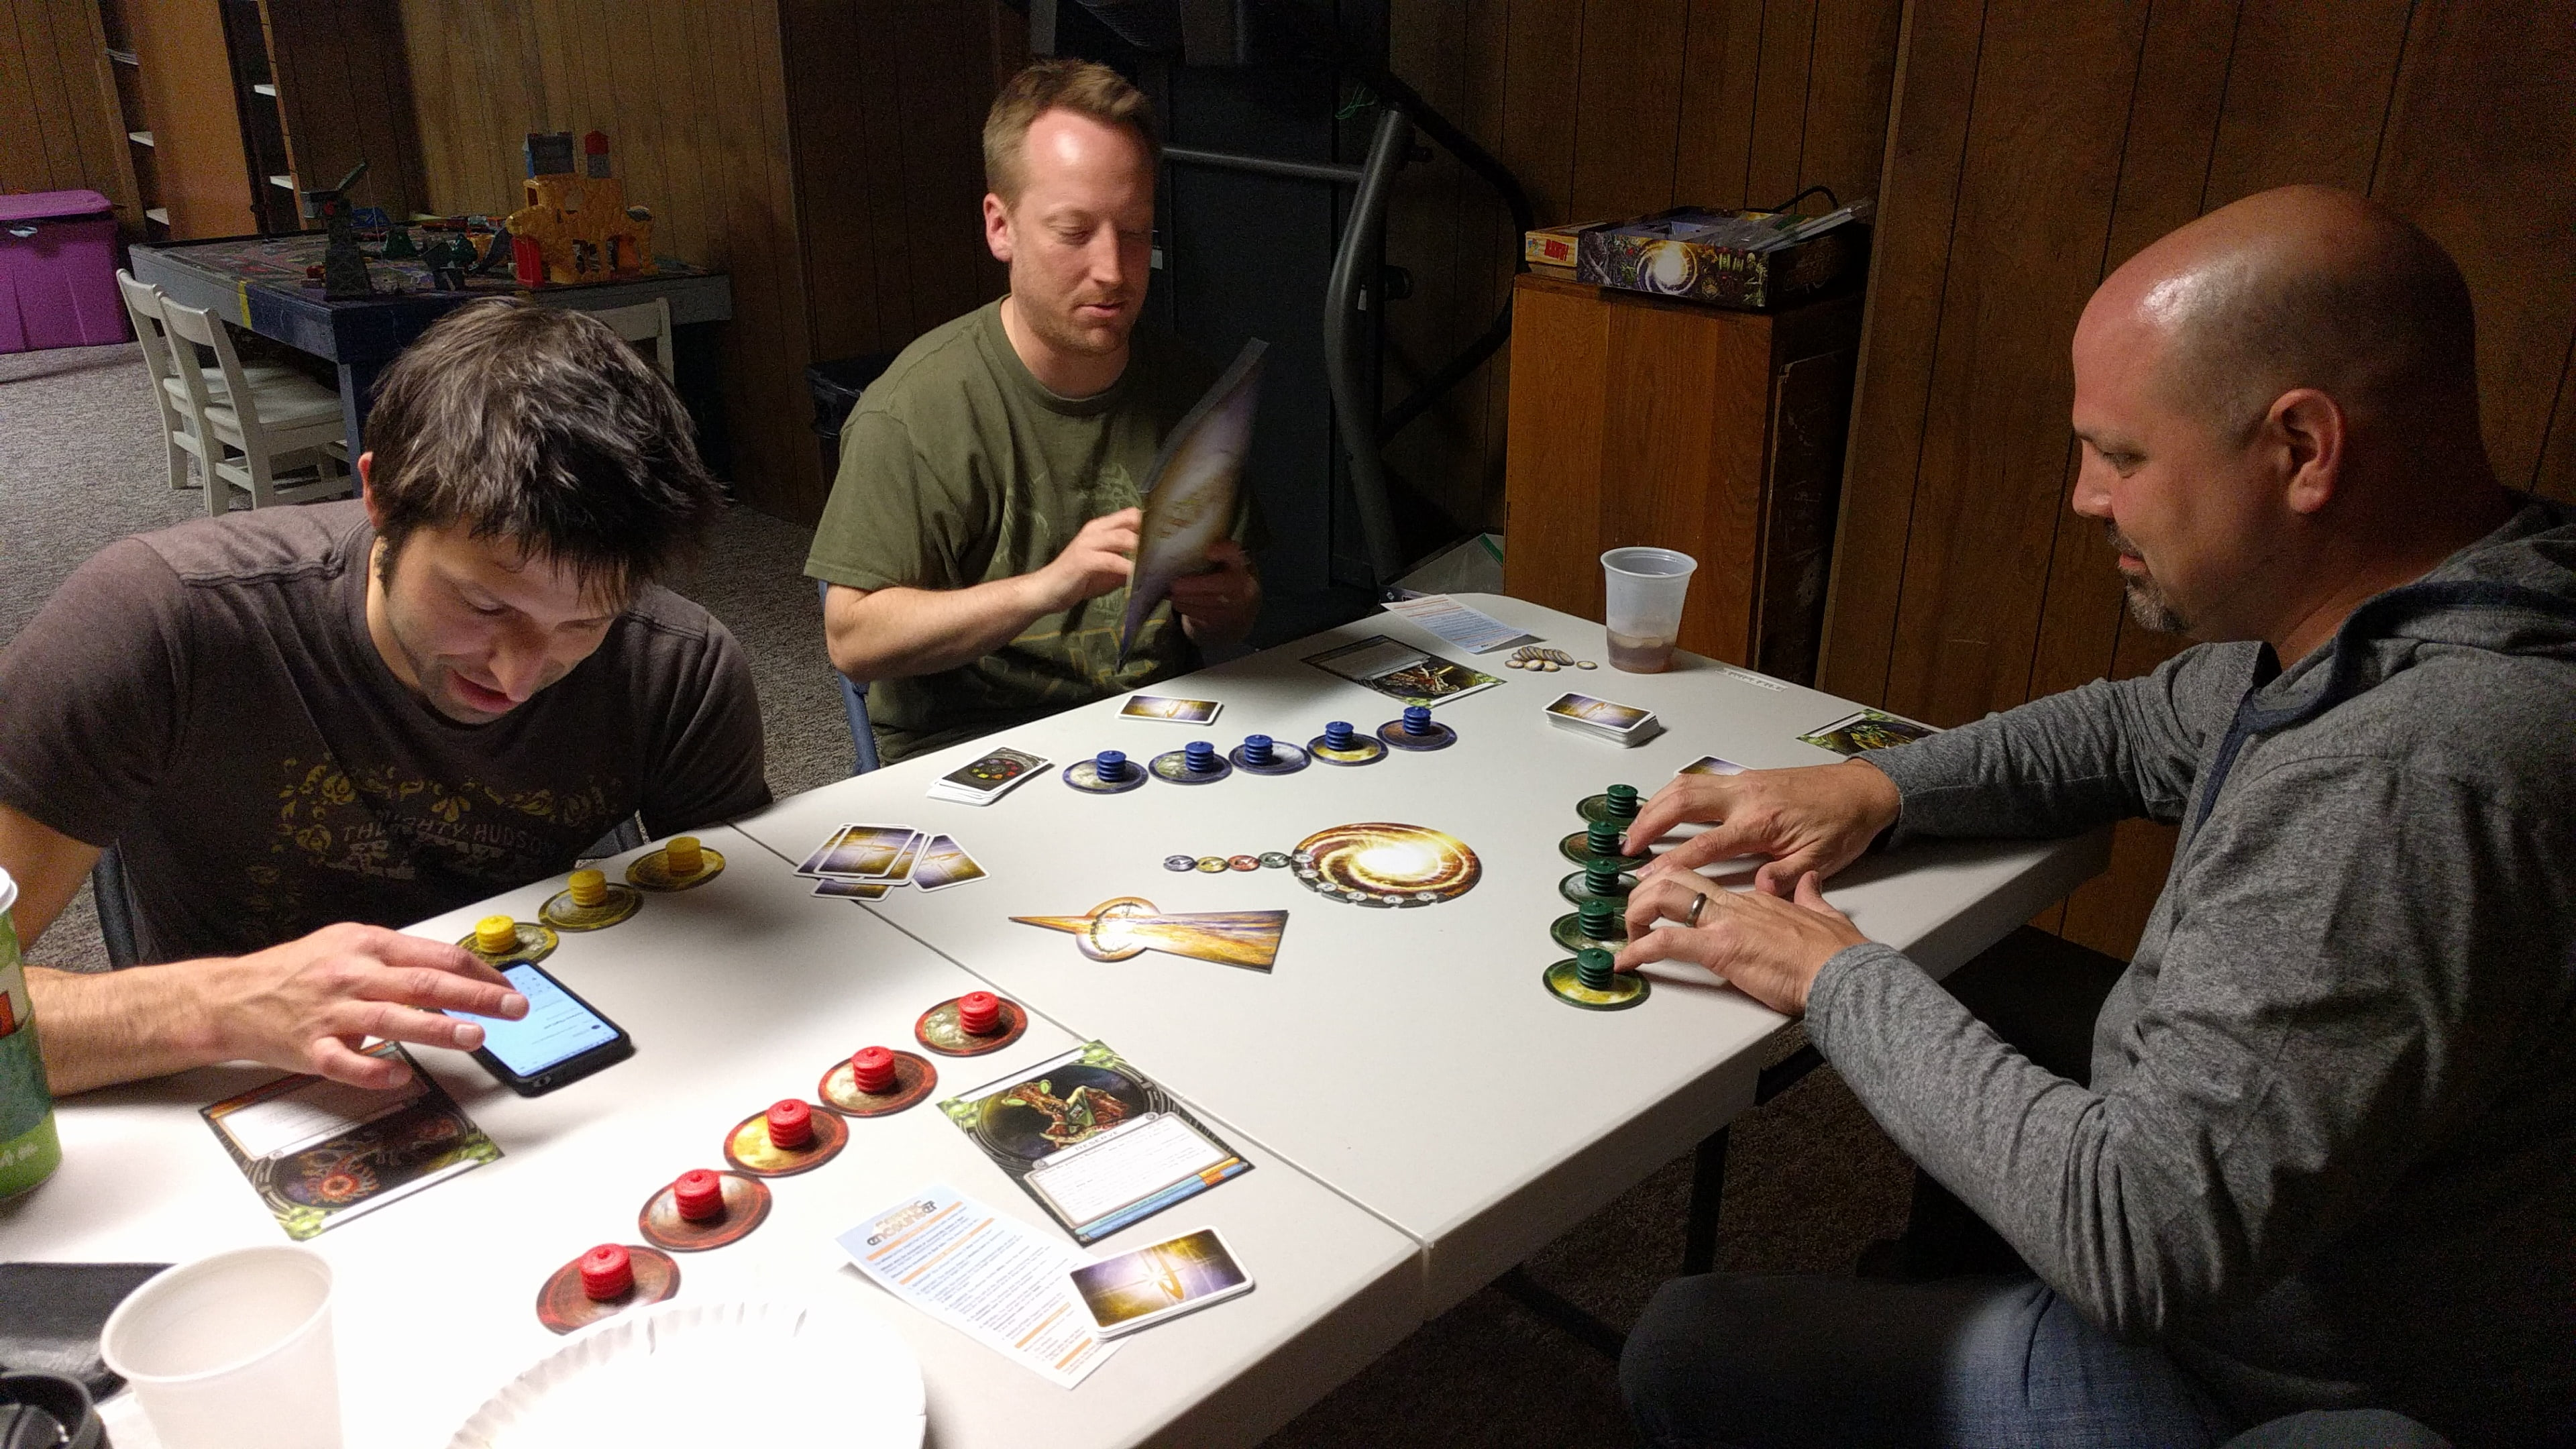 Playing Some Cosmic Encounter